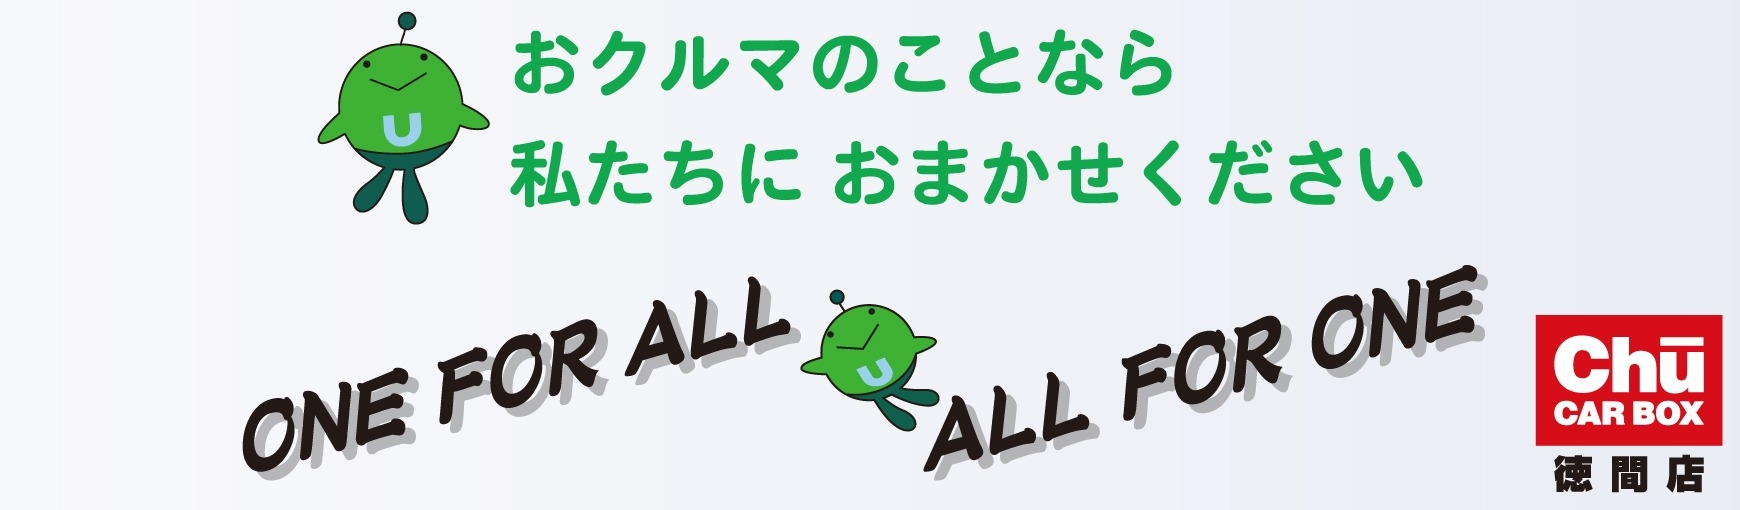 one_for_all__all_for_one